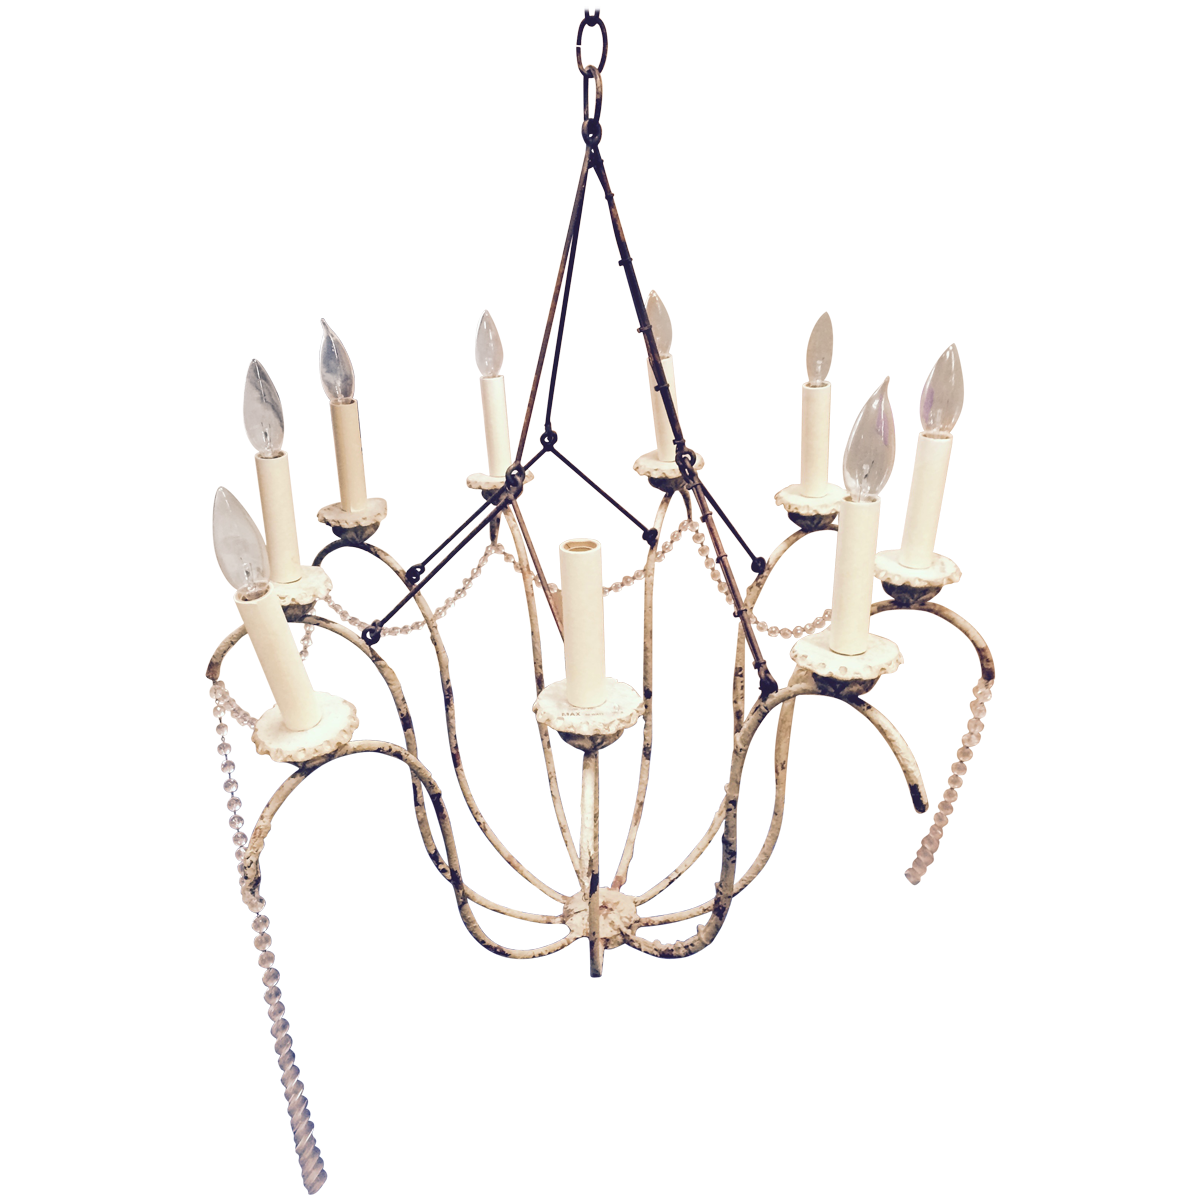 clip transparent download Chandeliers drawing at getdrawings. Chandelier clipart draw.